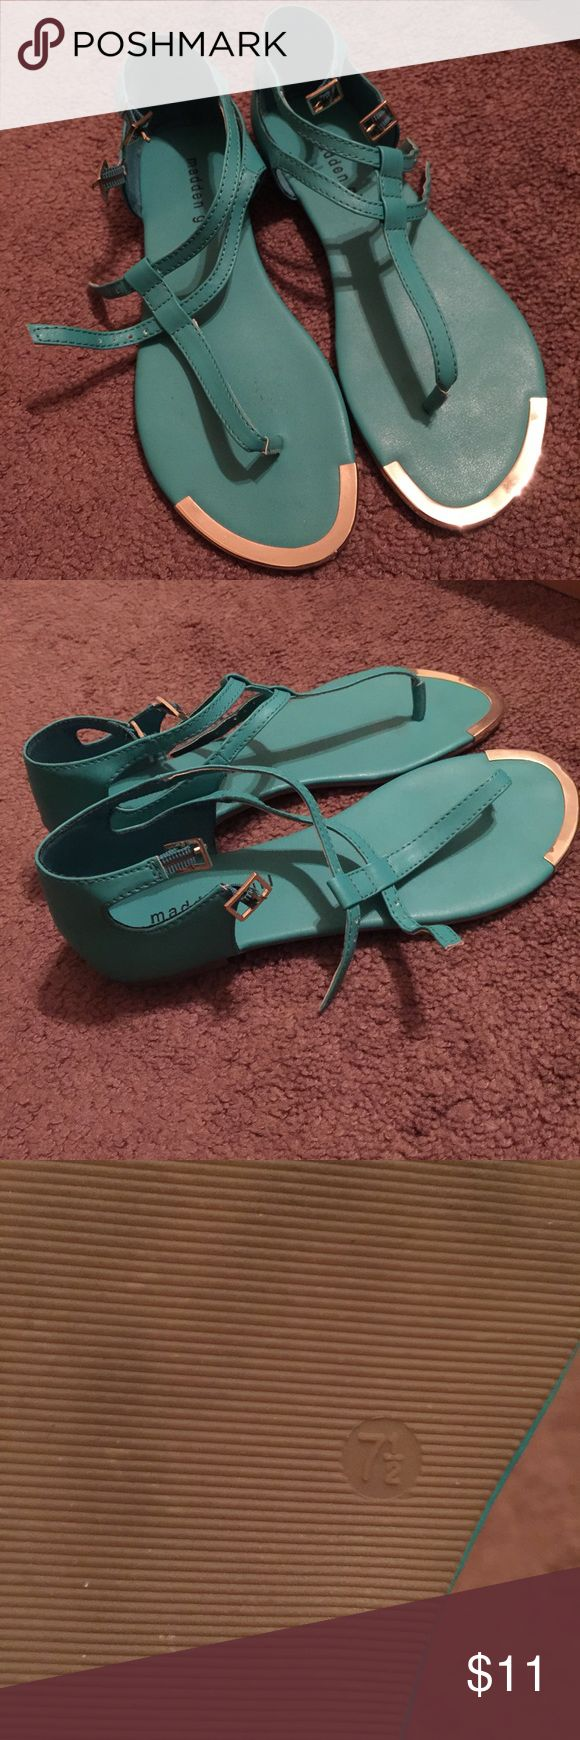 Turquoise Sandals 7 1/2; little dirty. Can be cleaned with soap and water Madden Girl Shoes Sandals